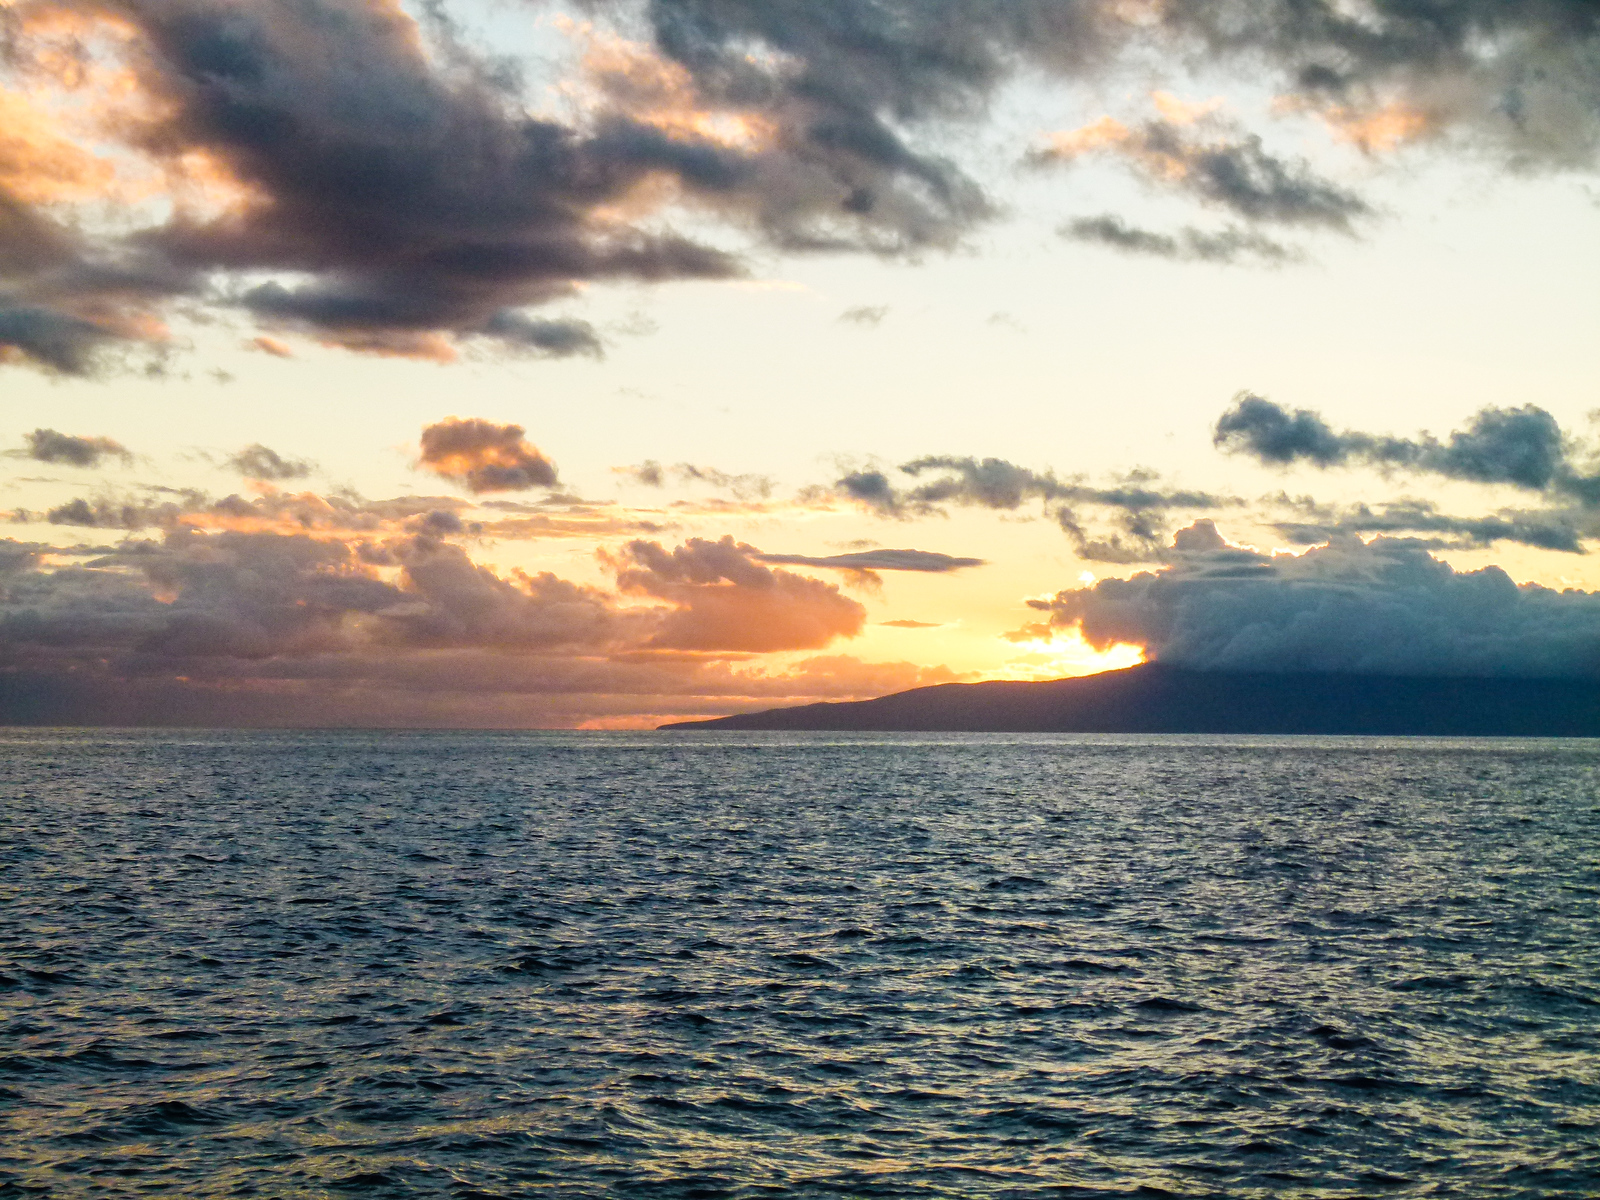 The setting's spectacular on a Maui sunset cruise.